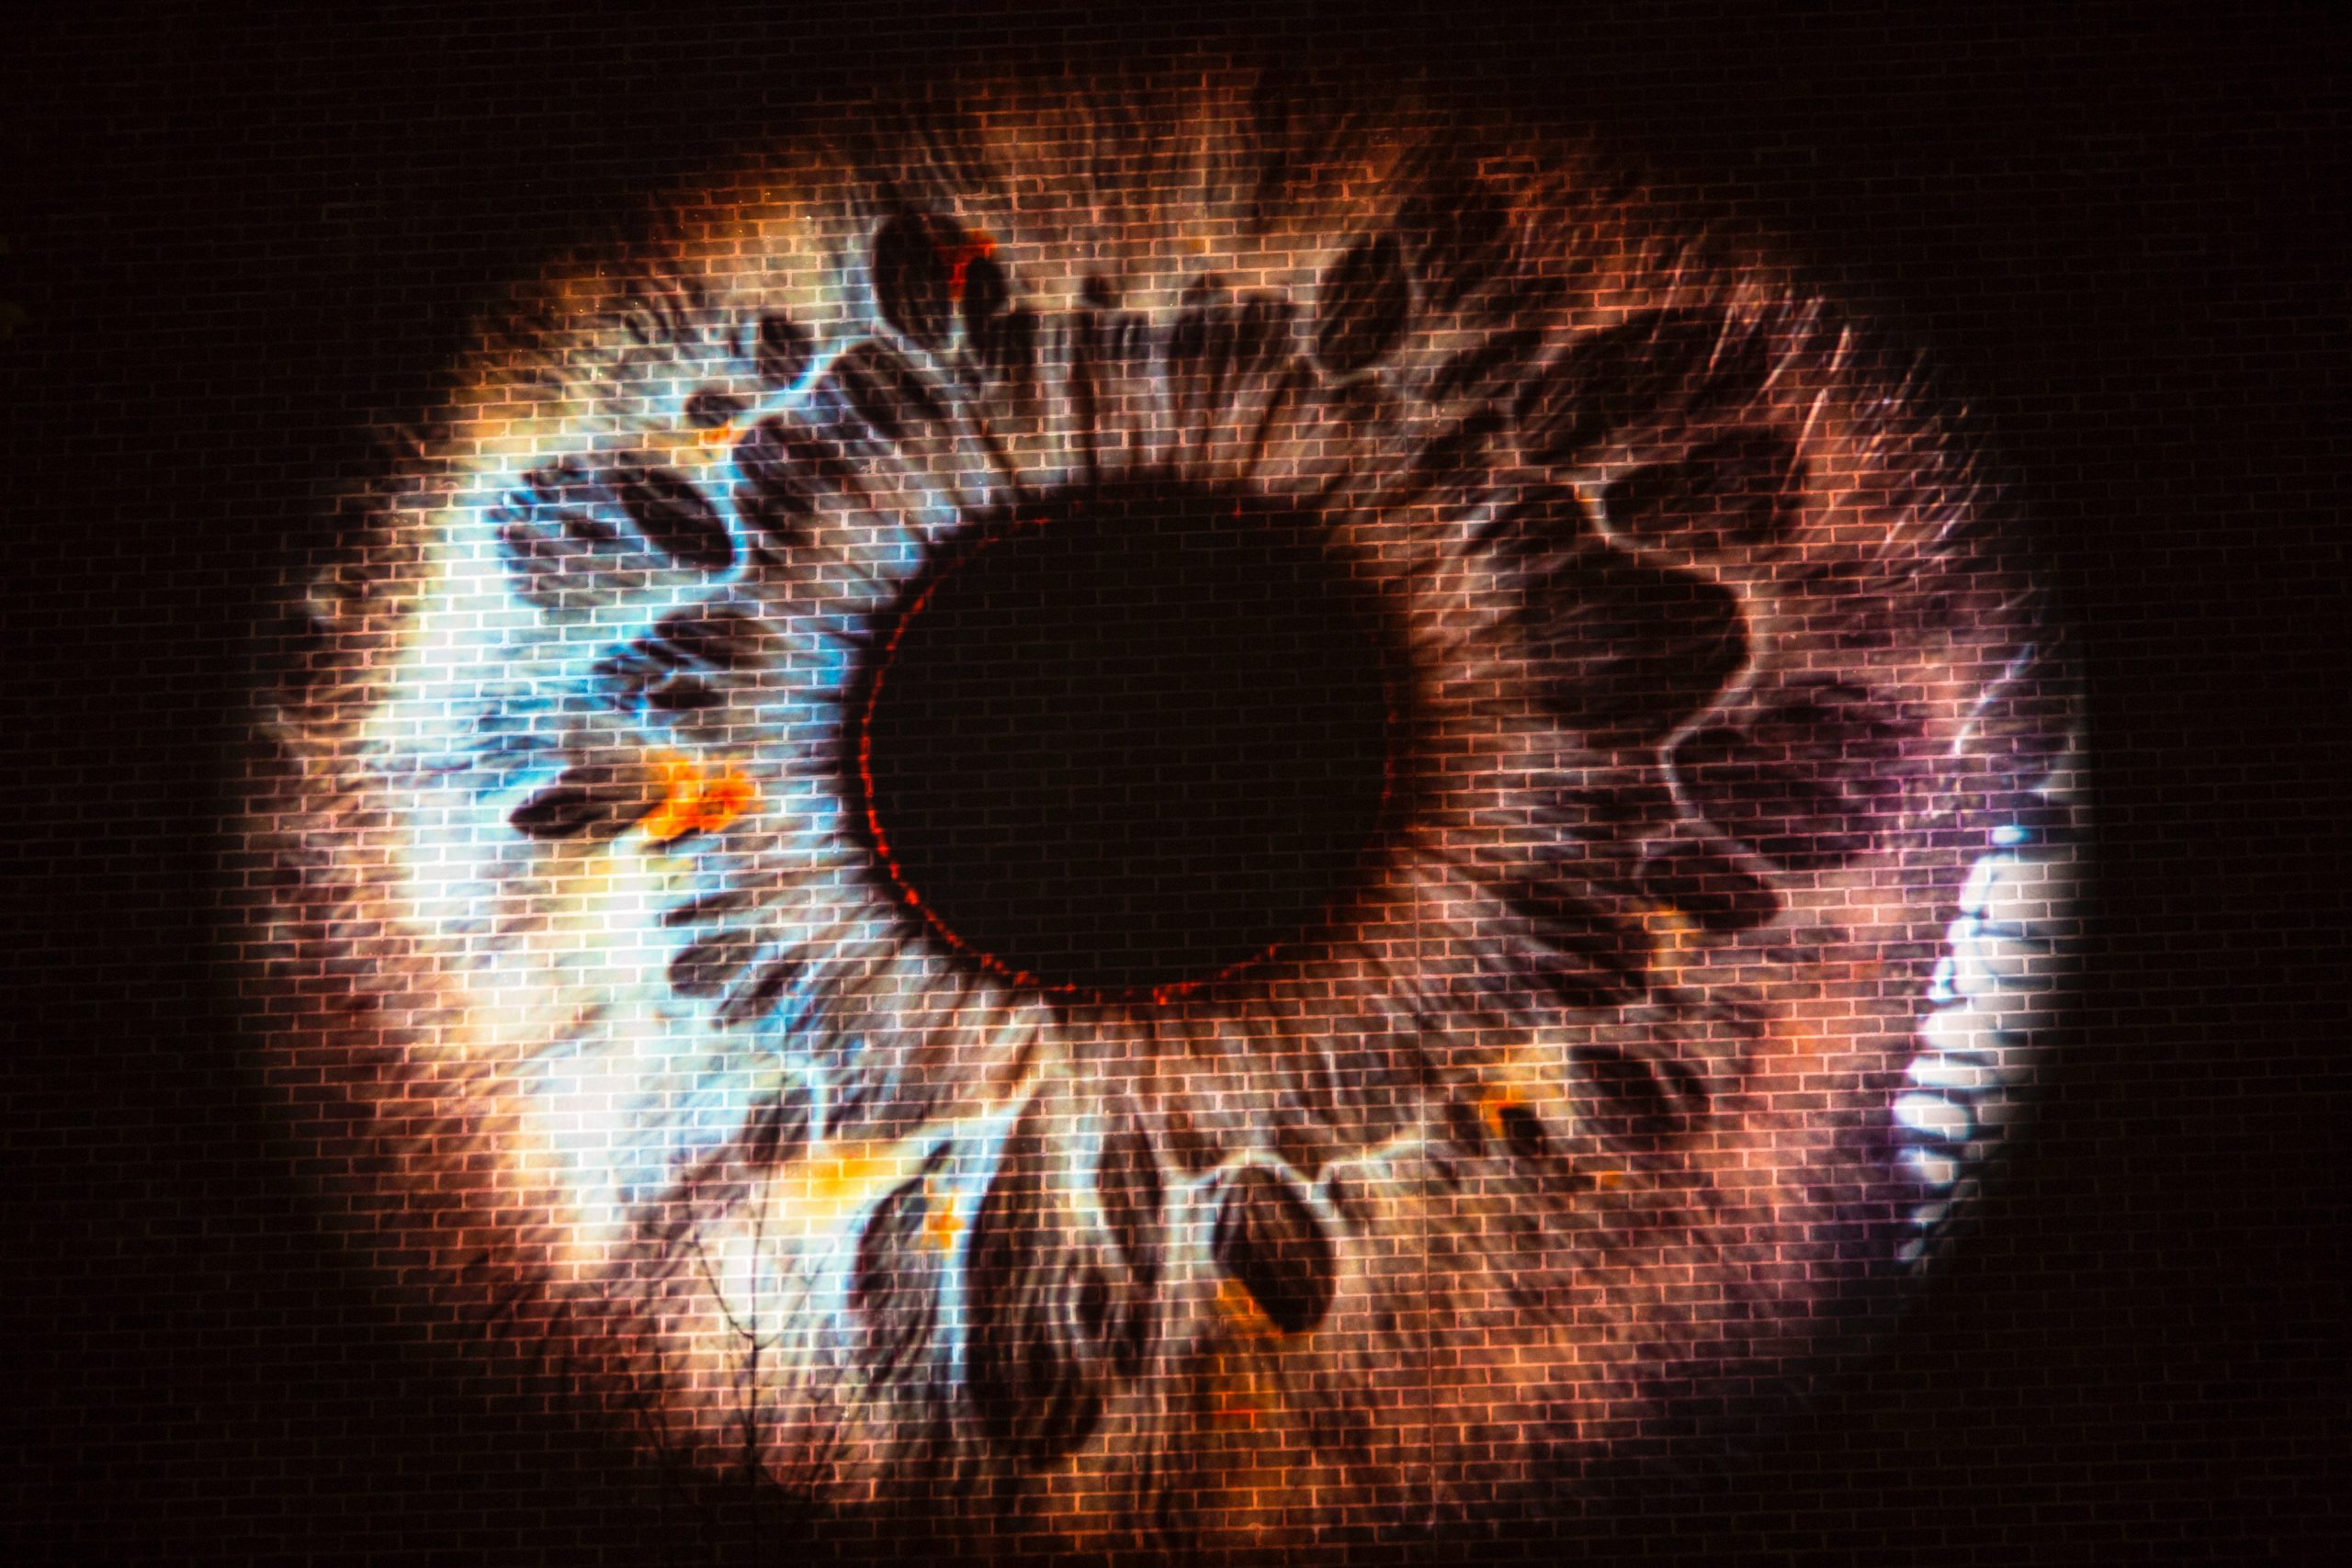 Image of a brown eye projected onto a brick wall